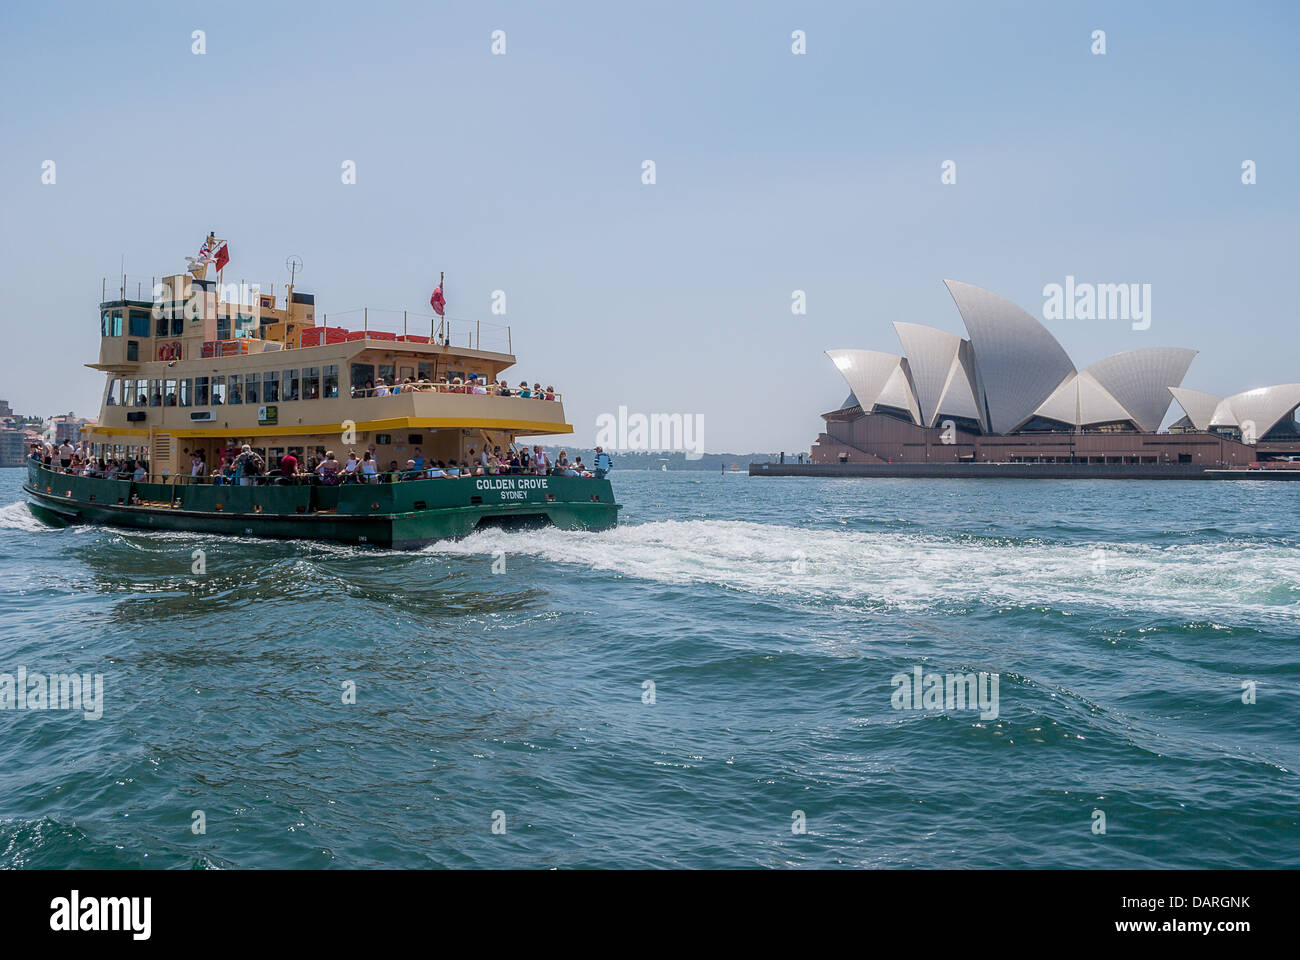 Ferries pass by the majestic Sydney Opera House in busy Sydney Harbour. - Stock Image